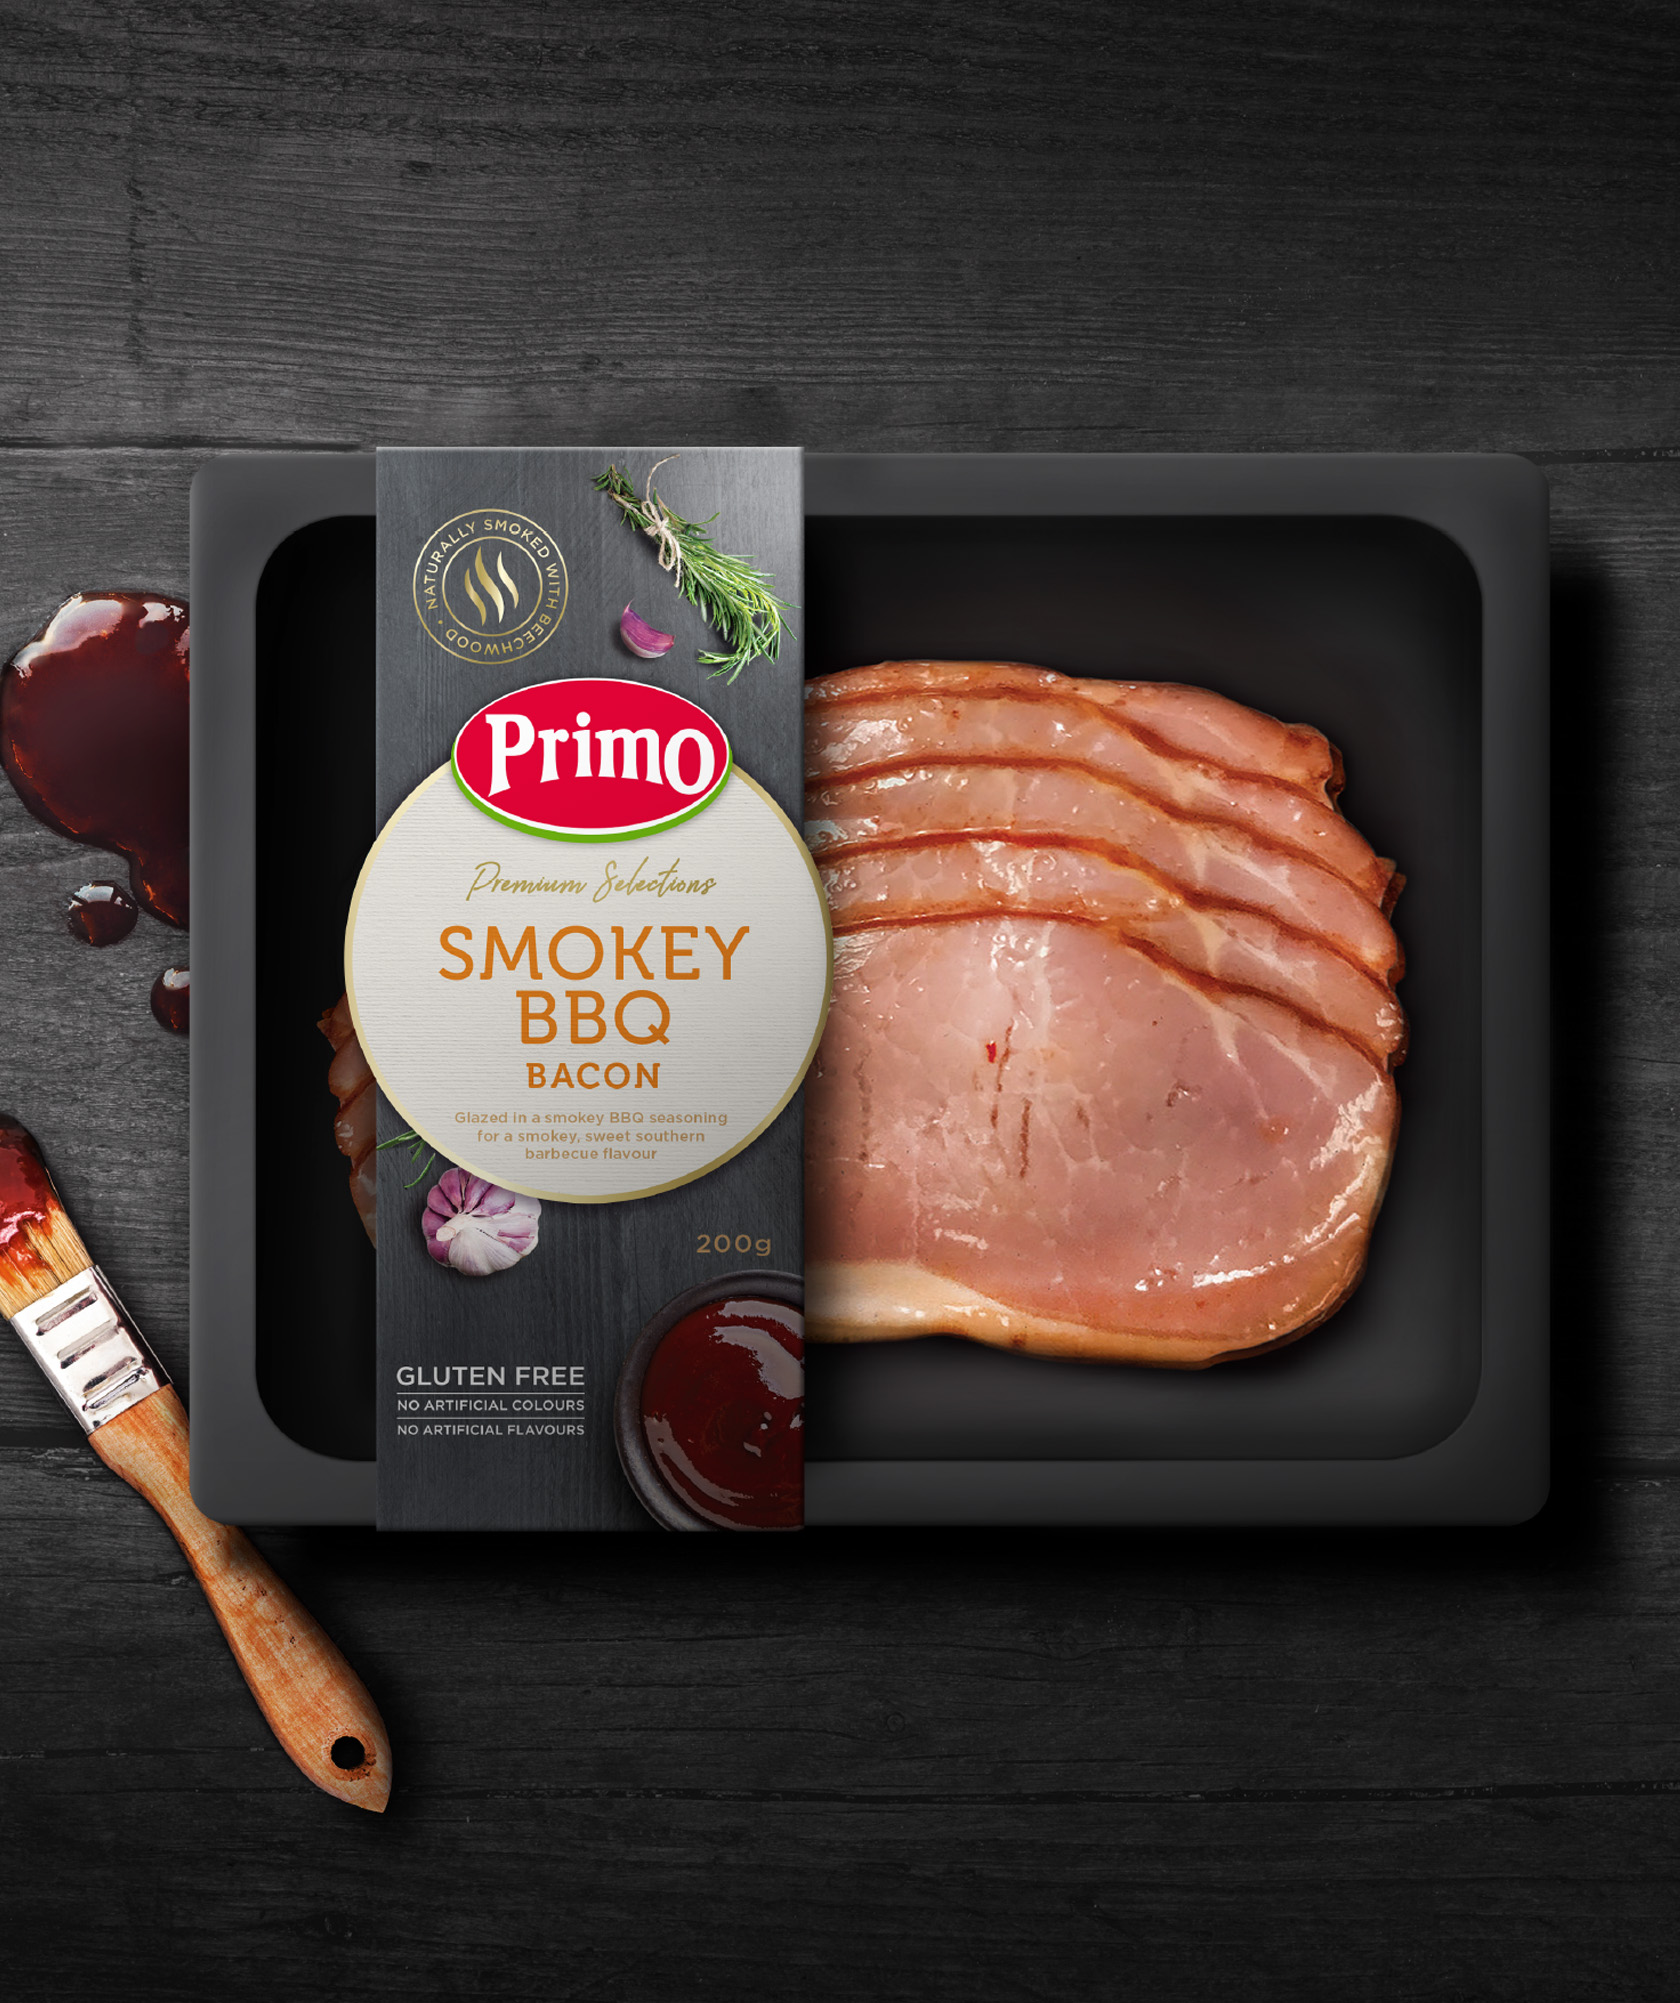 Primo Premium Selections Packaging Design Our Revolution Brand Design Brand Logo Brand Strategy Brand Innovation Food Packaging Food Design Food Brand Meat Branding Meat Packaging Meat innovation Packaging Innovation